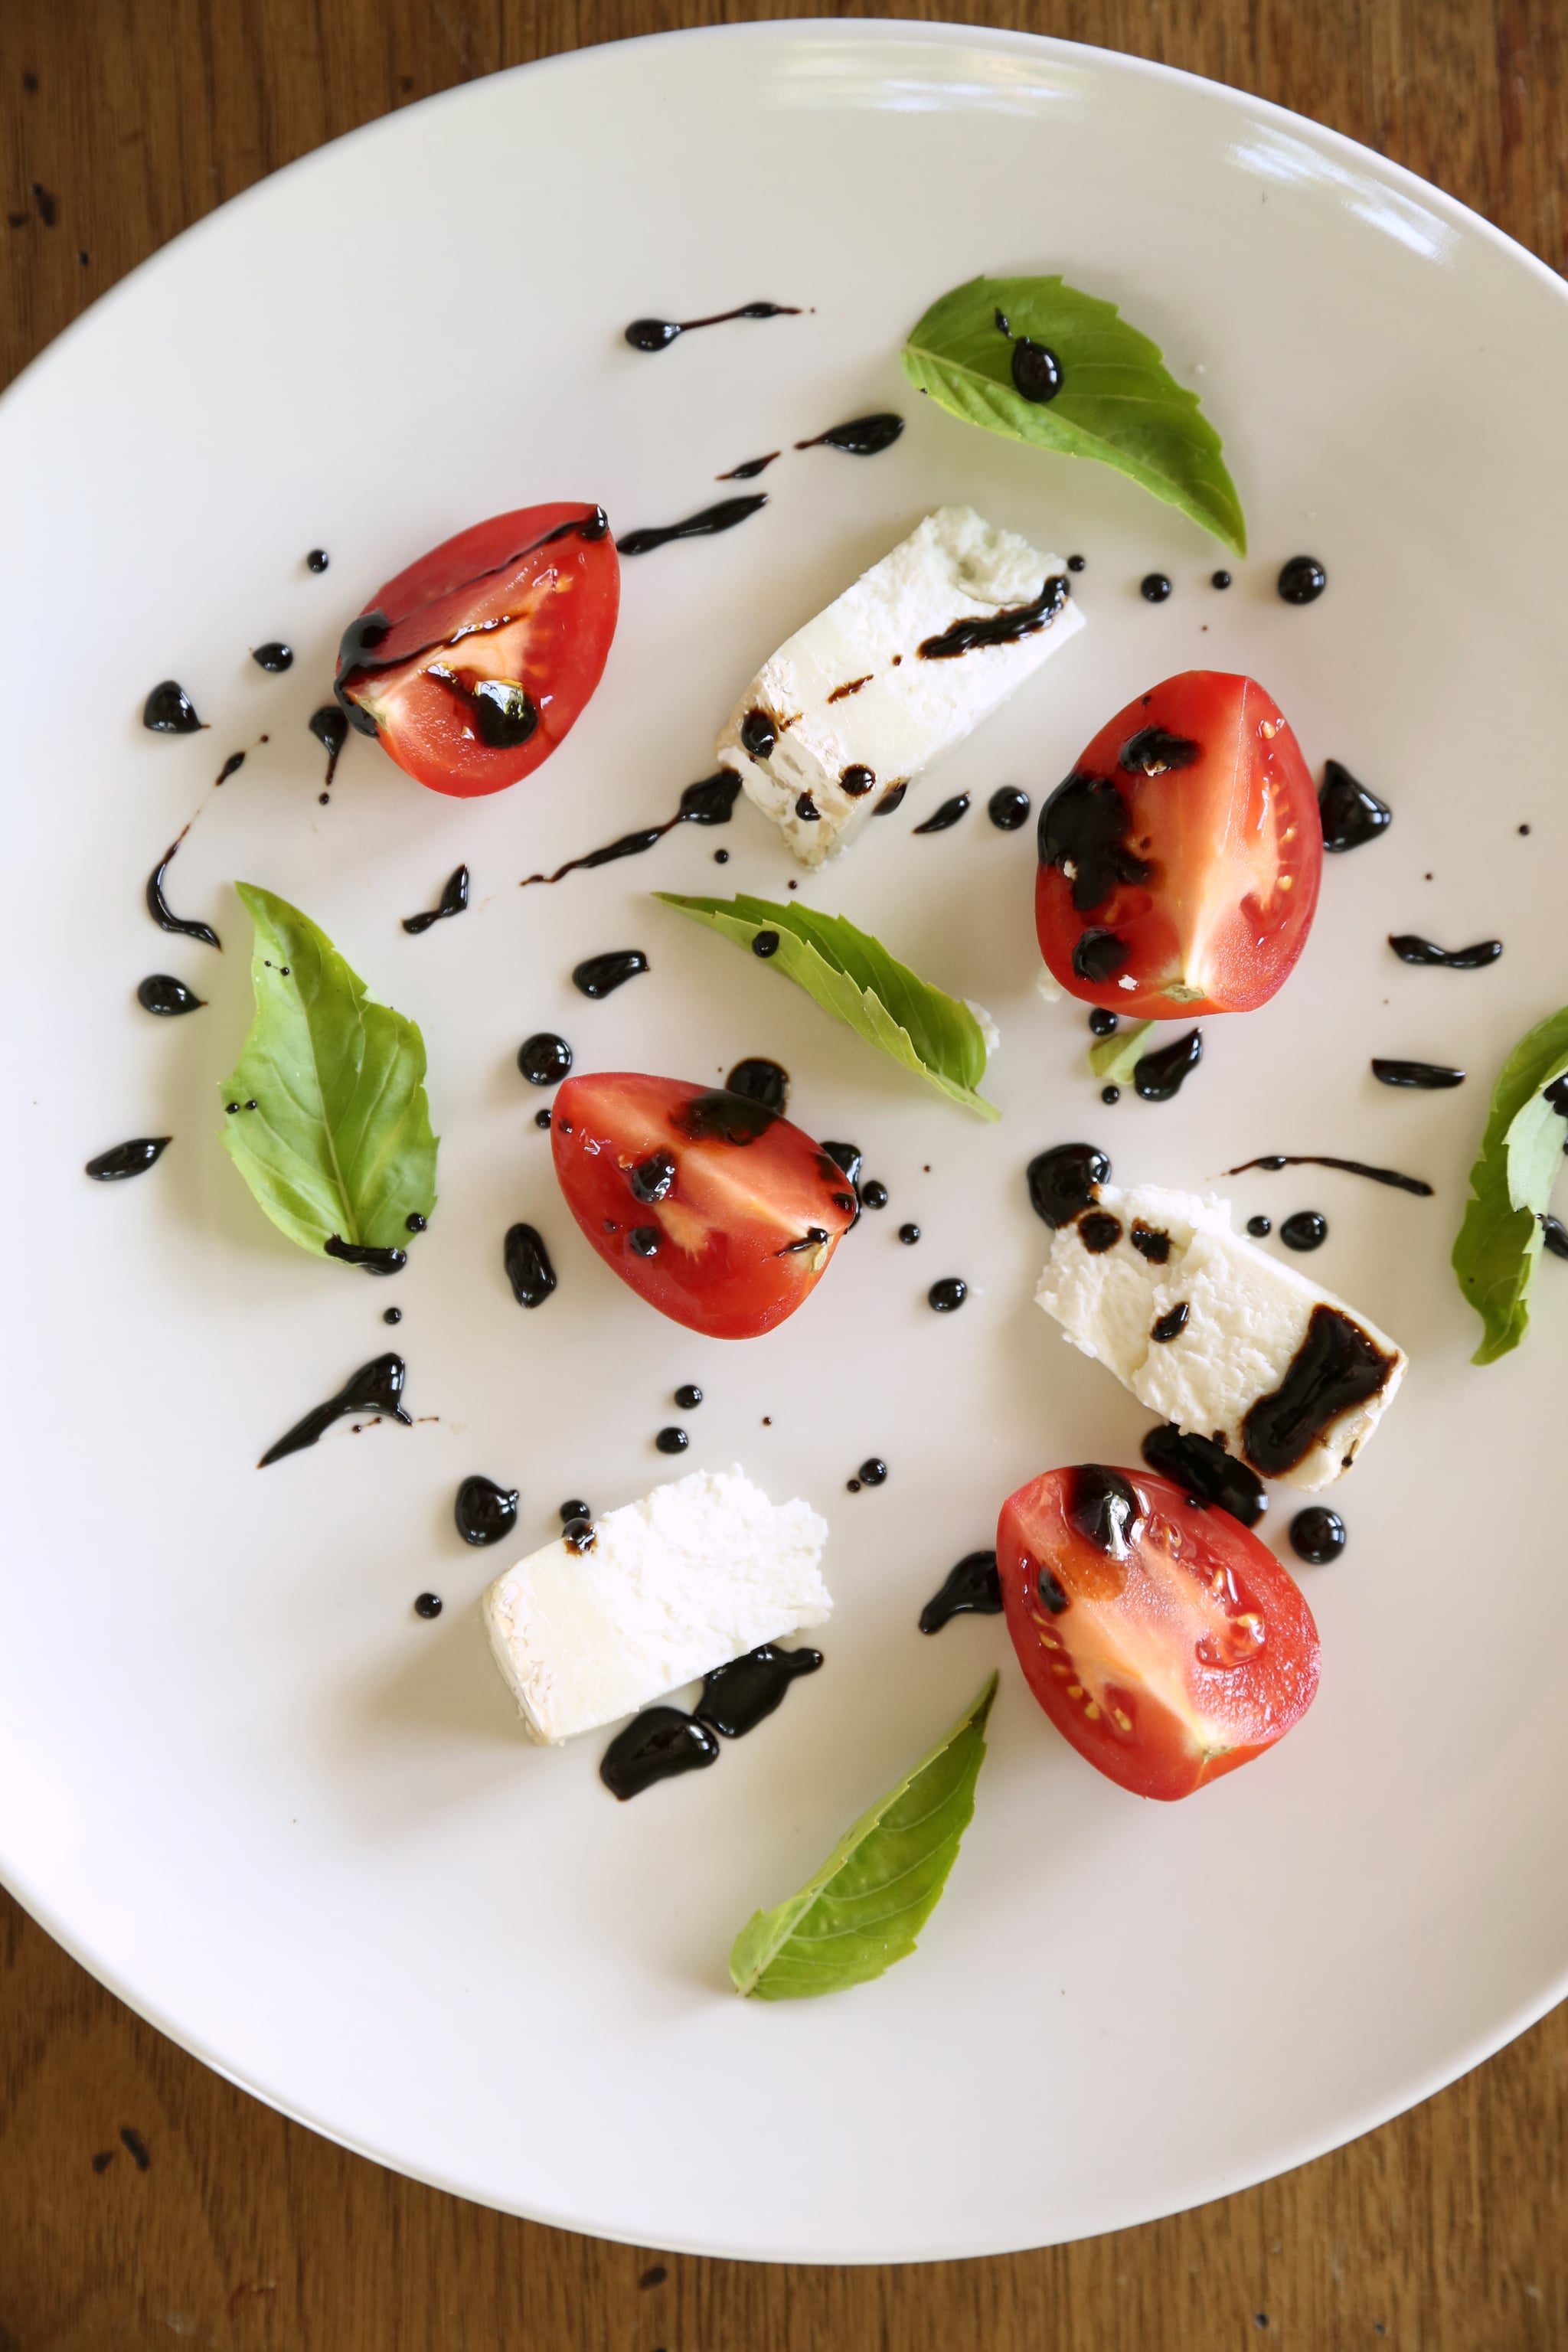 Uses For Balsamic Glaze The 1 Homemade Condiment You Should And Can Make Immediately Popsugar Food Photo 7